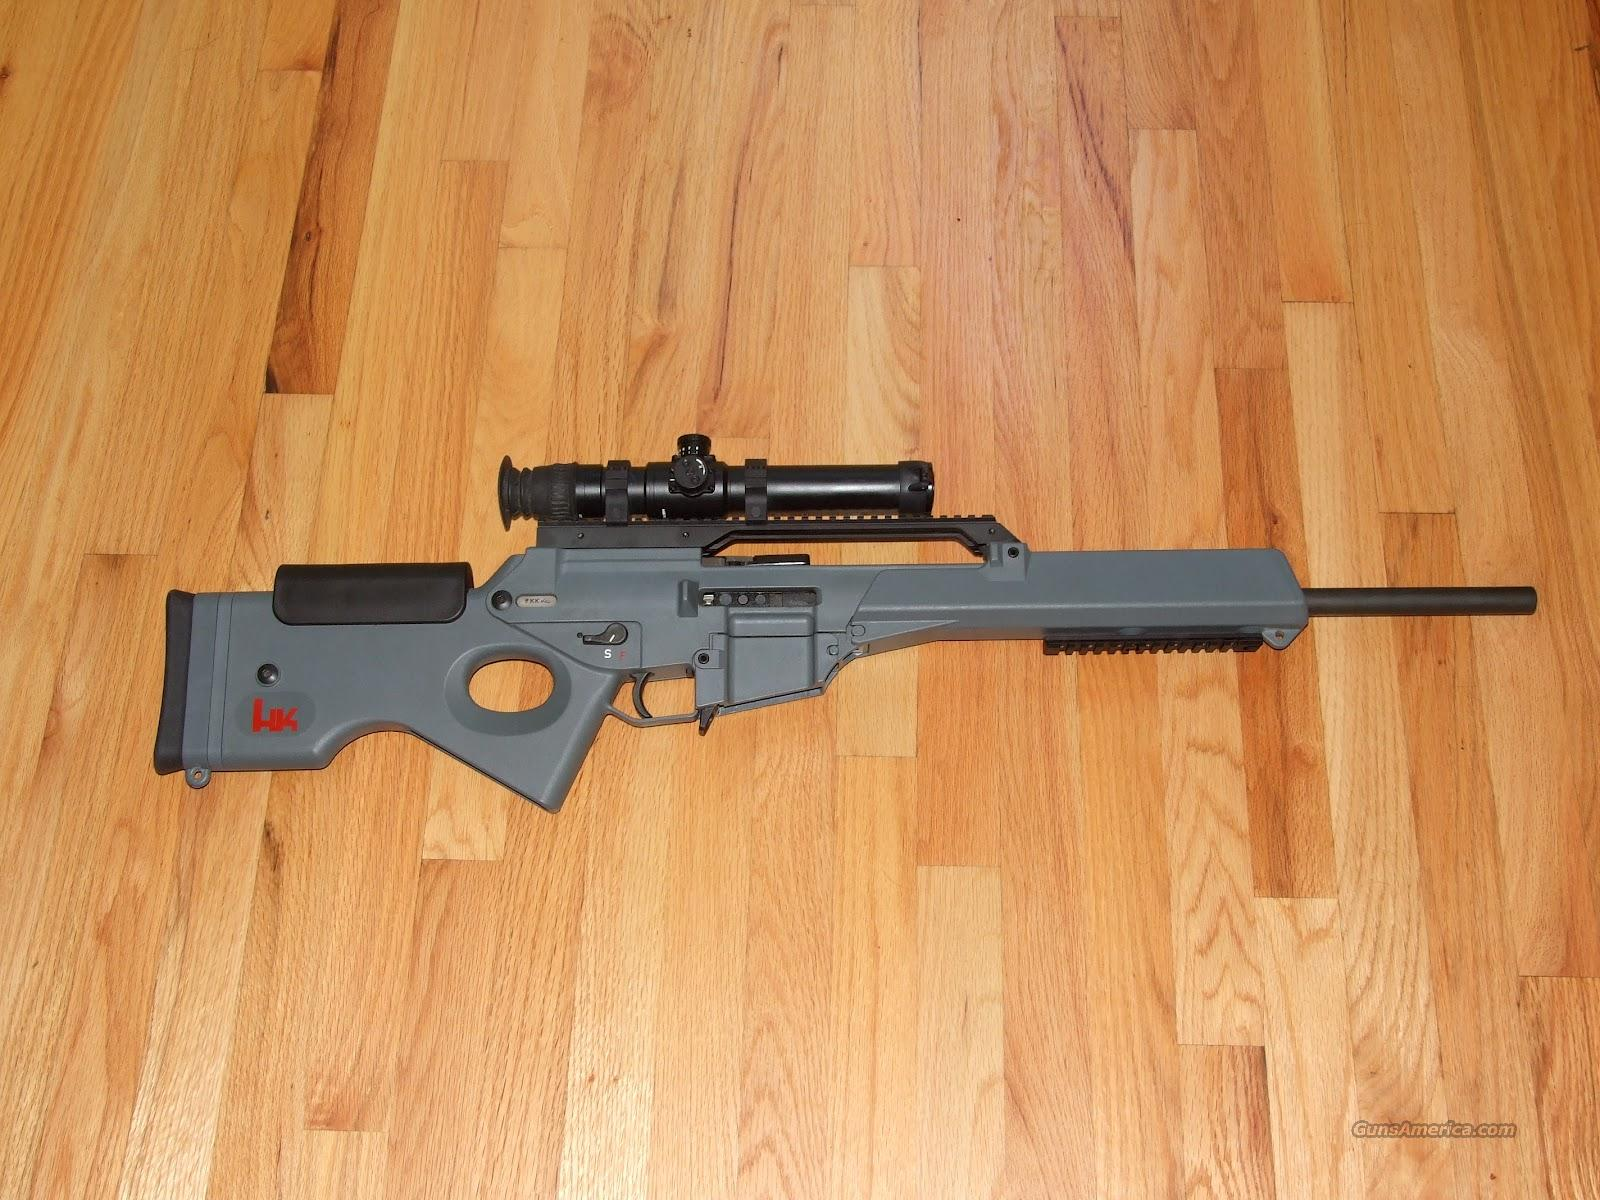 HK SL8-1 rifle with IOR Scope and Mags  Guns > Rifles > Heckler & Koch Rifles > Tactical